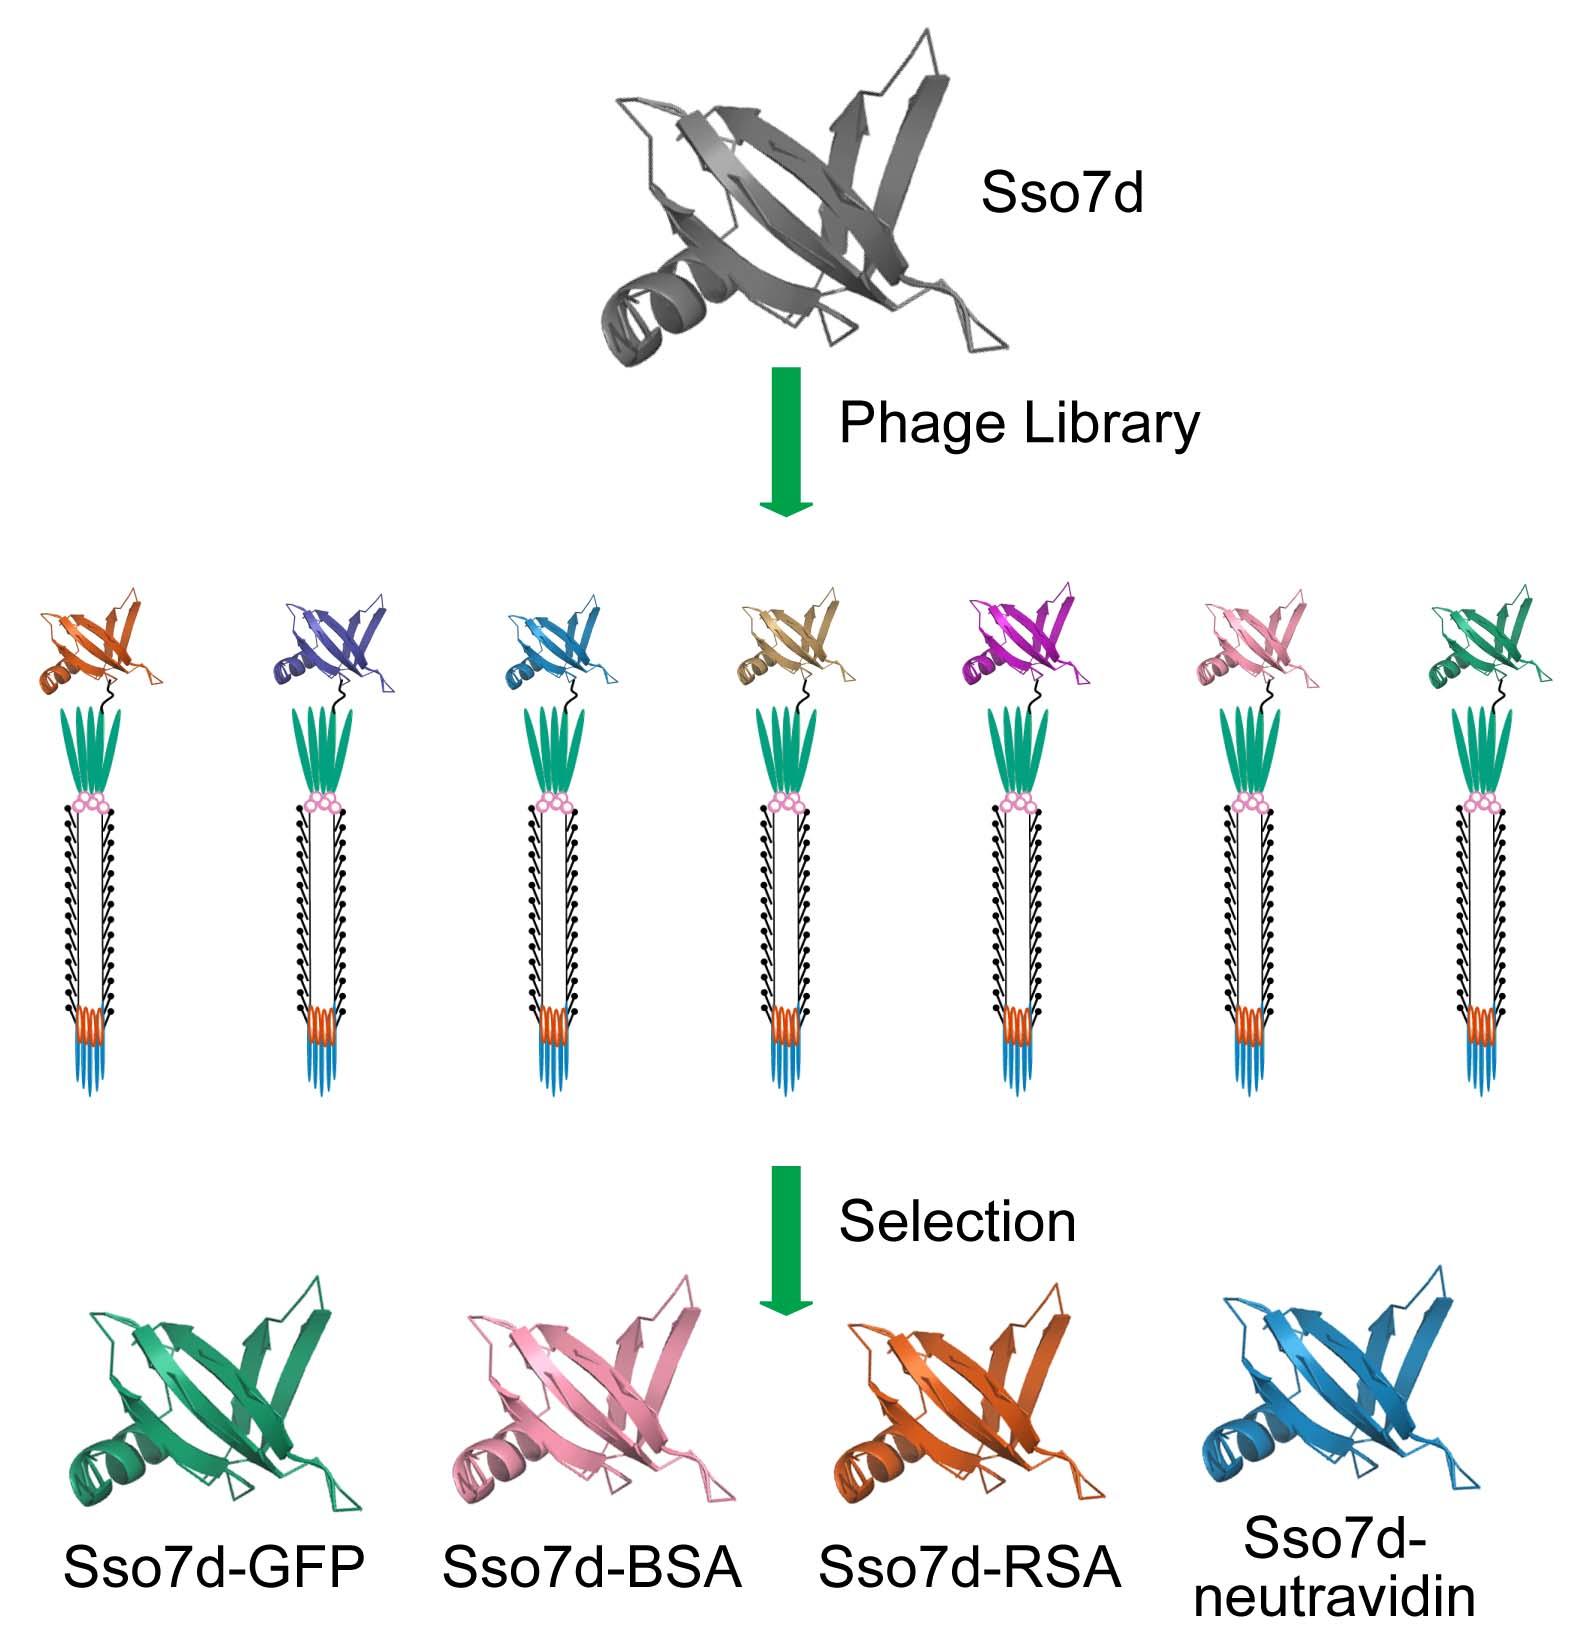 The Fisk lab is interested in identifying new scaffold proteins for phage display libraries. We have had success identifying tight, specific binding molecules for a variety of protein targets from a library based on the 65 amino acid hyperthermophilic scaffold protein Sso7d. (FEBS J, 2016, 283, pp 1351–1367)